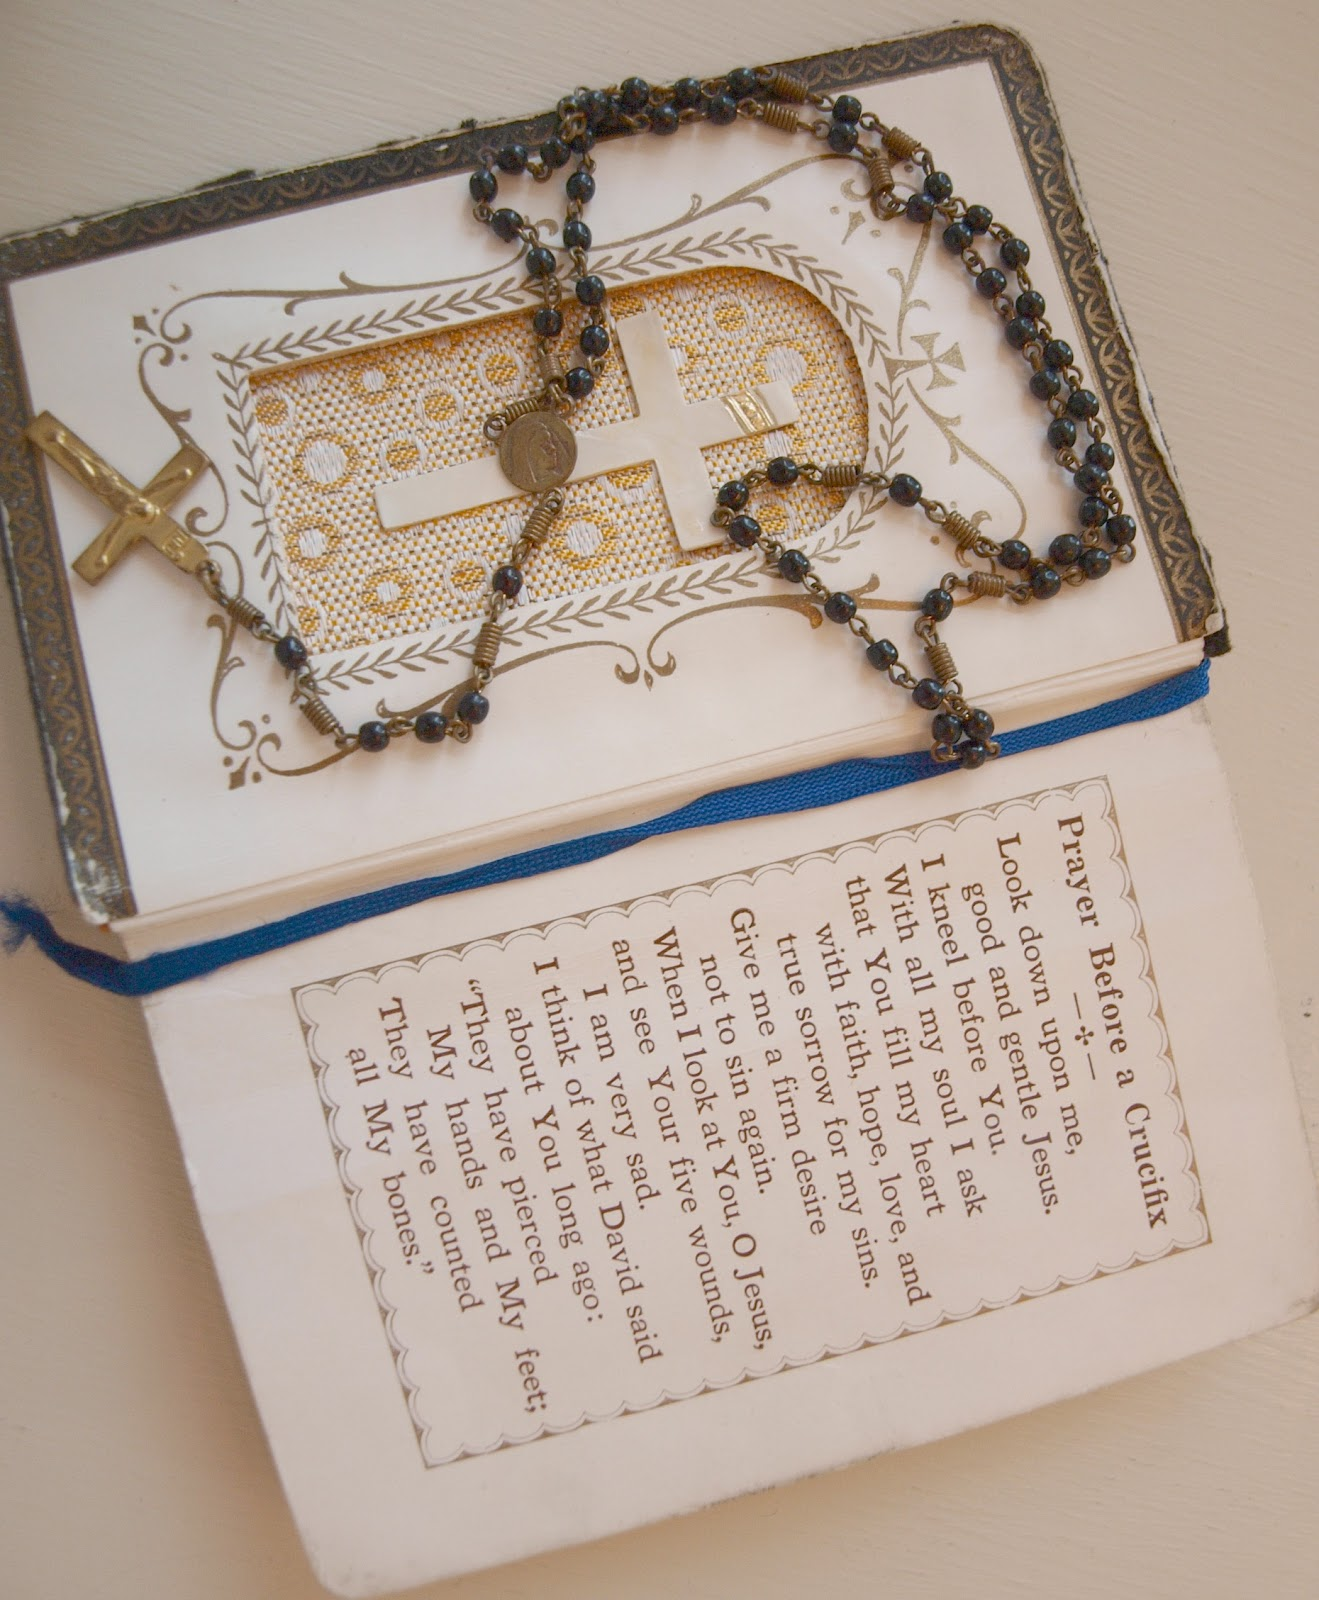 Vintage prayer book with rosary